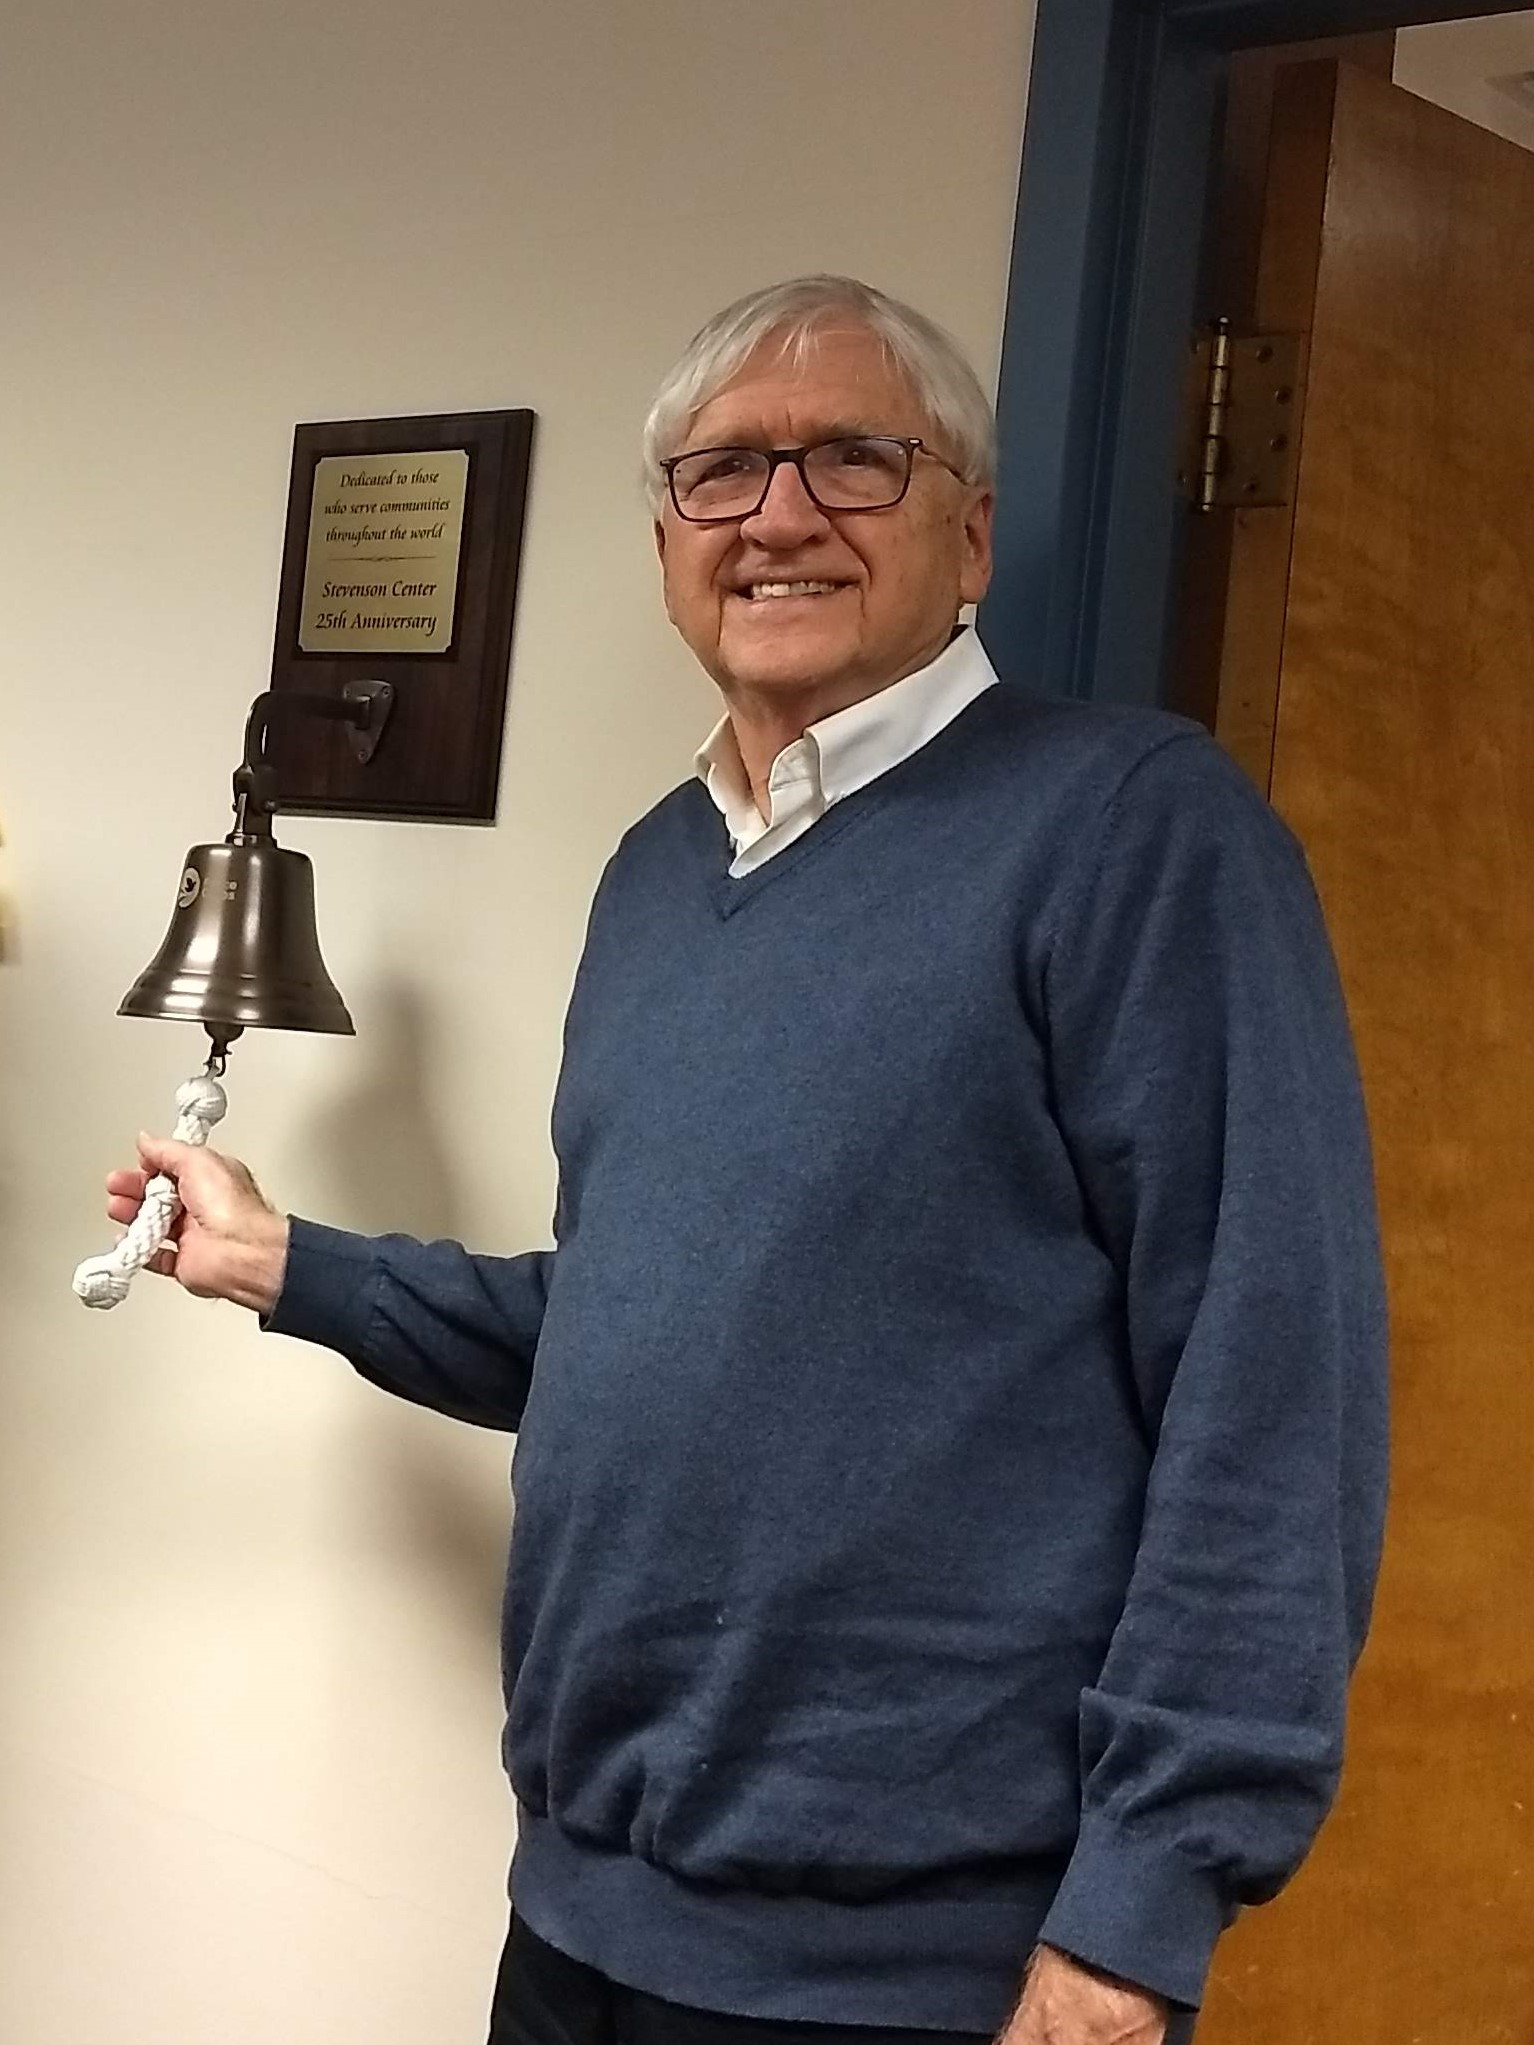 Robert W. Hunt, professor emeritus and founder of the Stevenson Center, ringing the 25th anniversary Peace Corps commemorative bell. The Hunt Family Fund enabled Fellows to attend the <em>Housing Matters!</em> conference.